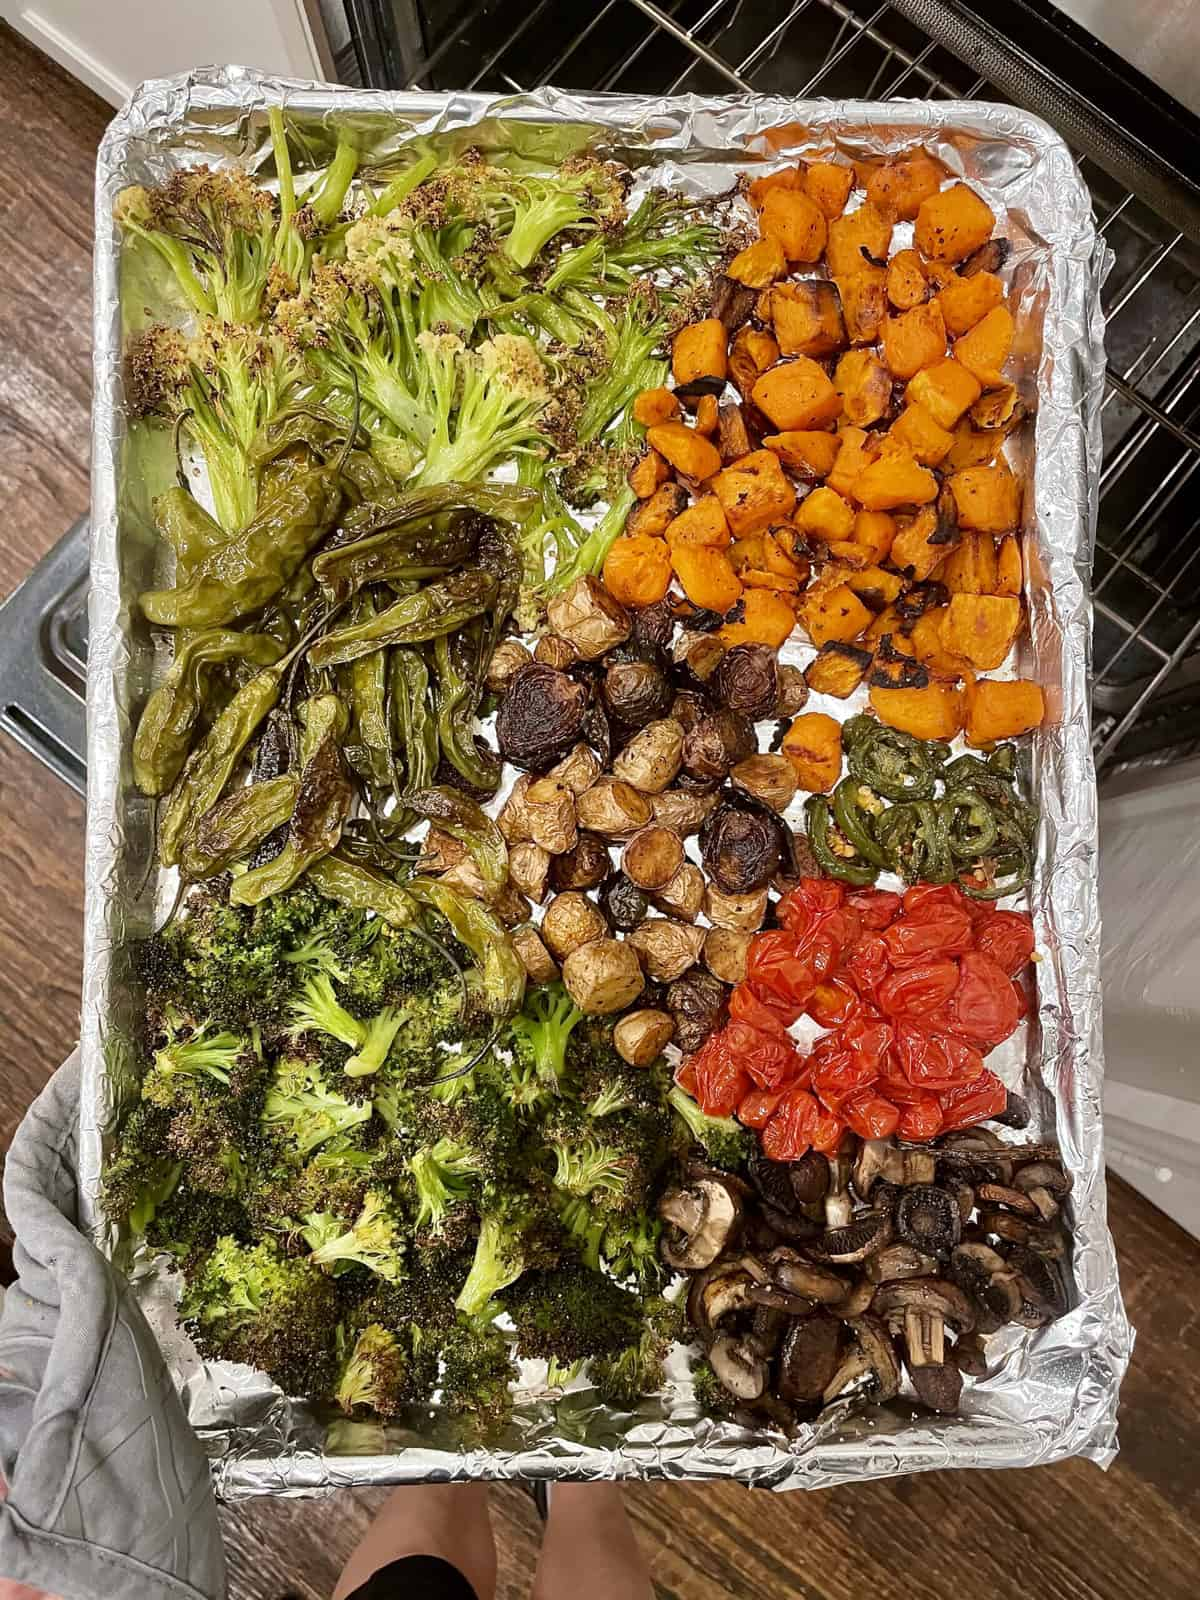 How To Roast Vegetables by The BakerMama